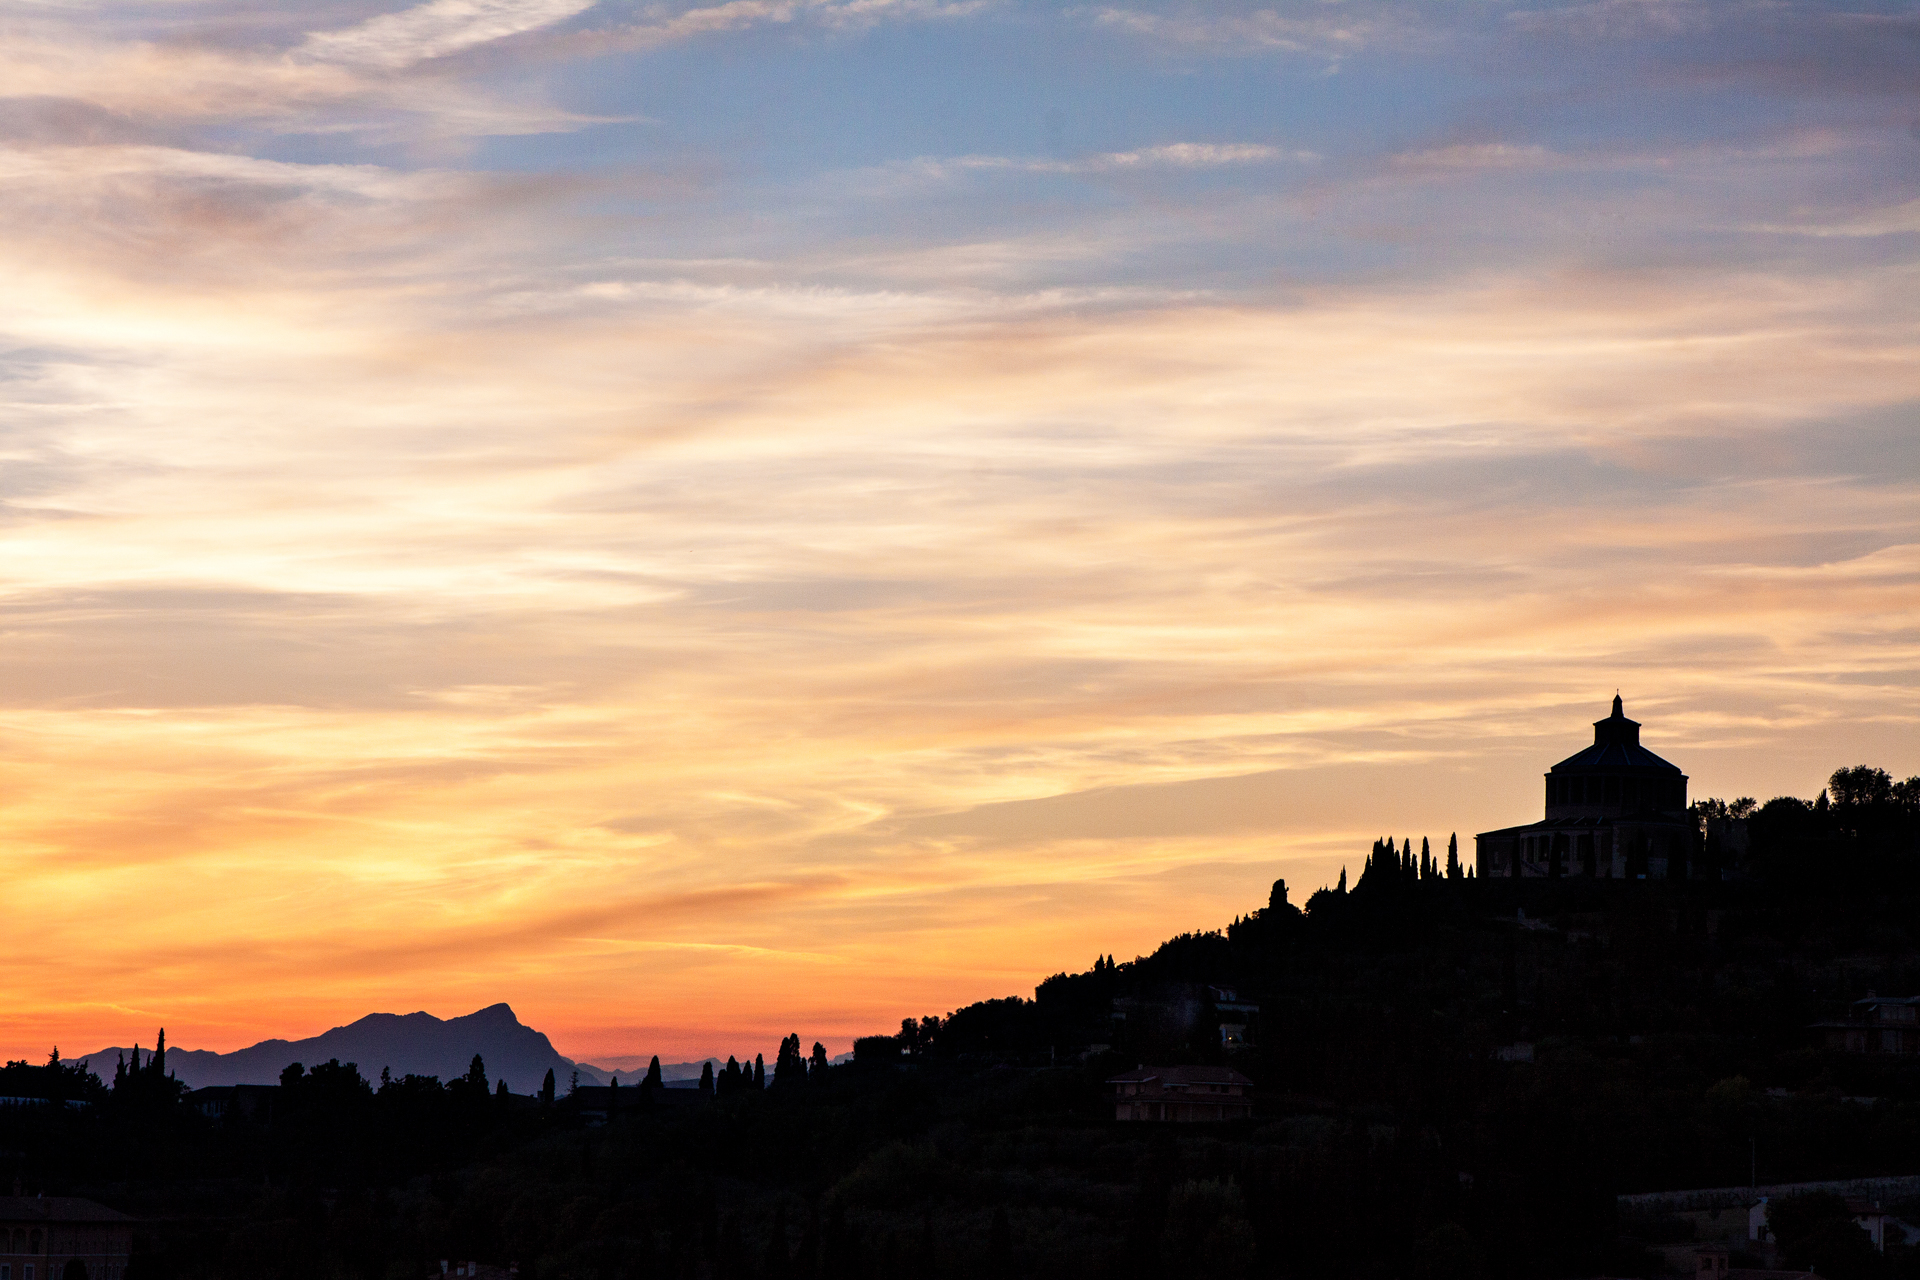 Verona, Italy Sunset with Mountains and Silhouette